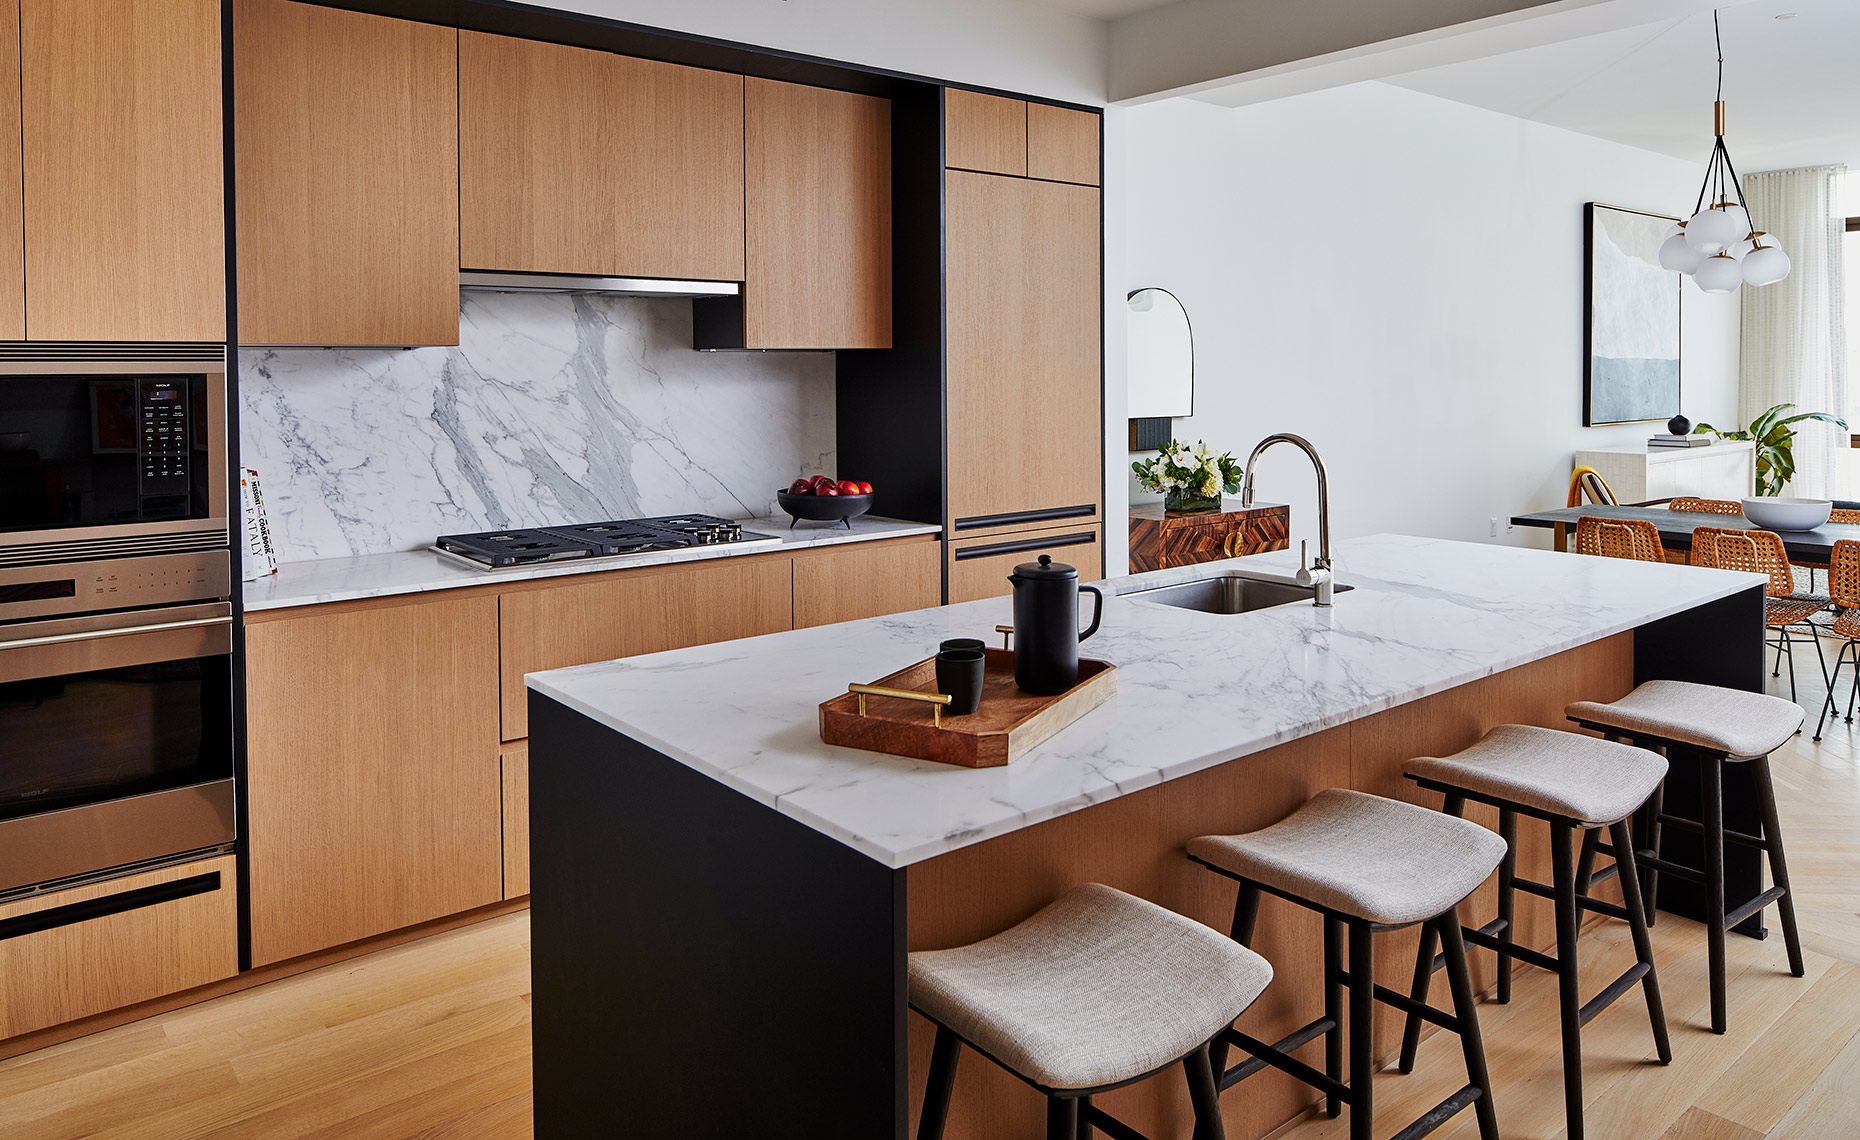 Gramercy_Unit9A_Kitchen2_0141_R01